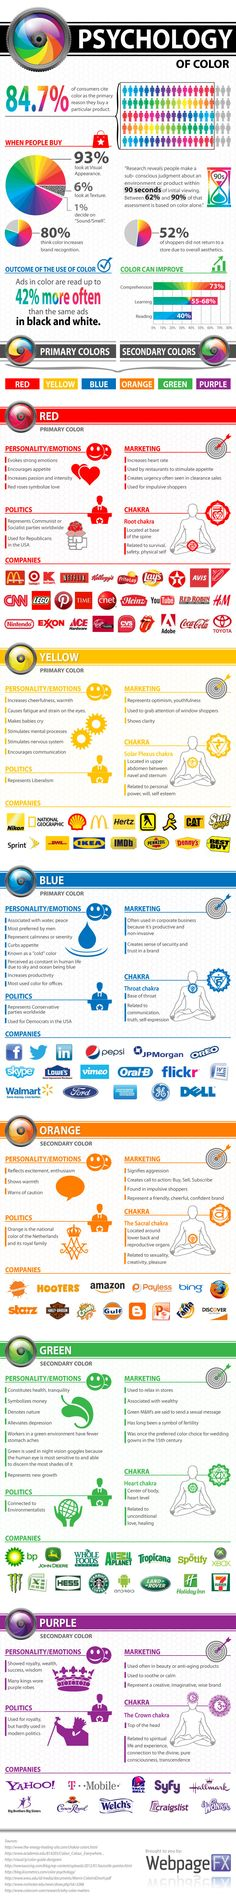 Psicología del color http://smallbiztrends.com/2013/04/psychology-of-color-infographic.html